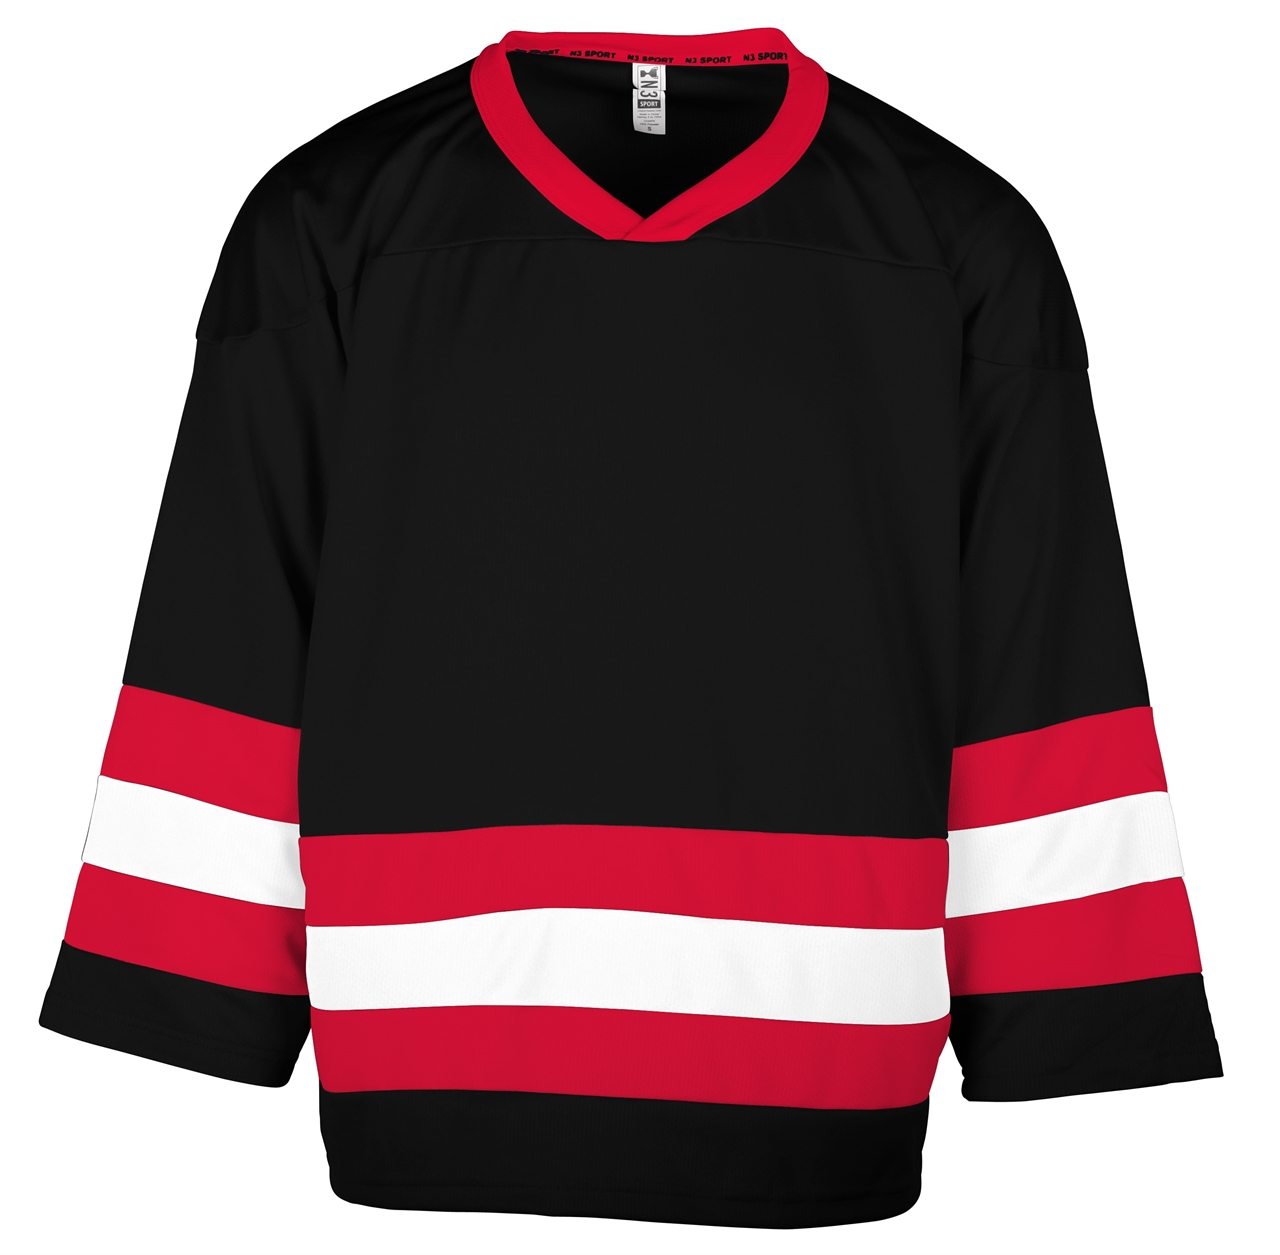 Picture of N3 SPORT Striped Hockey Jersey